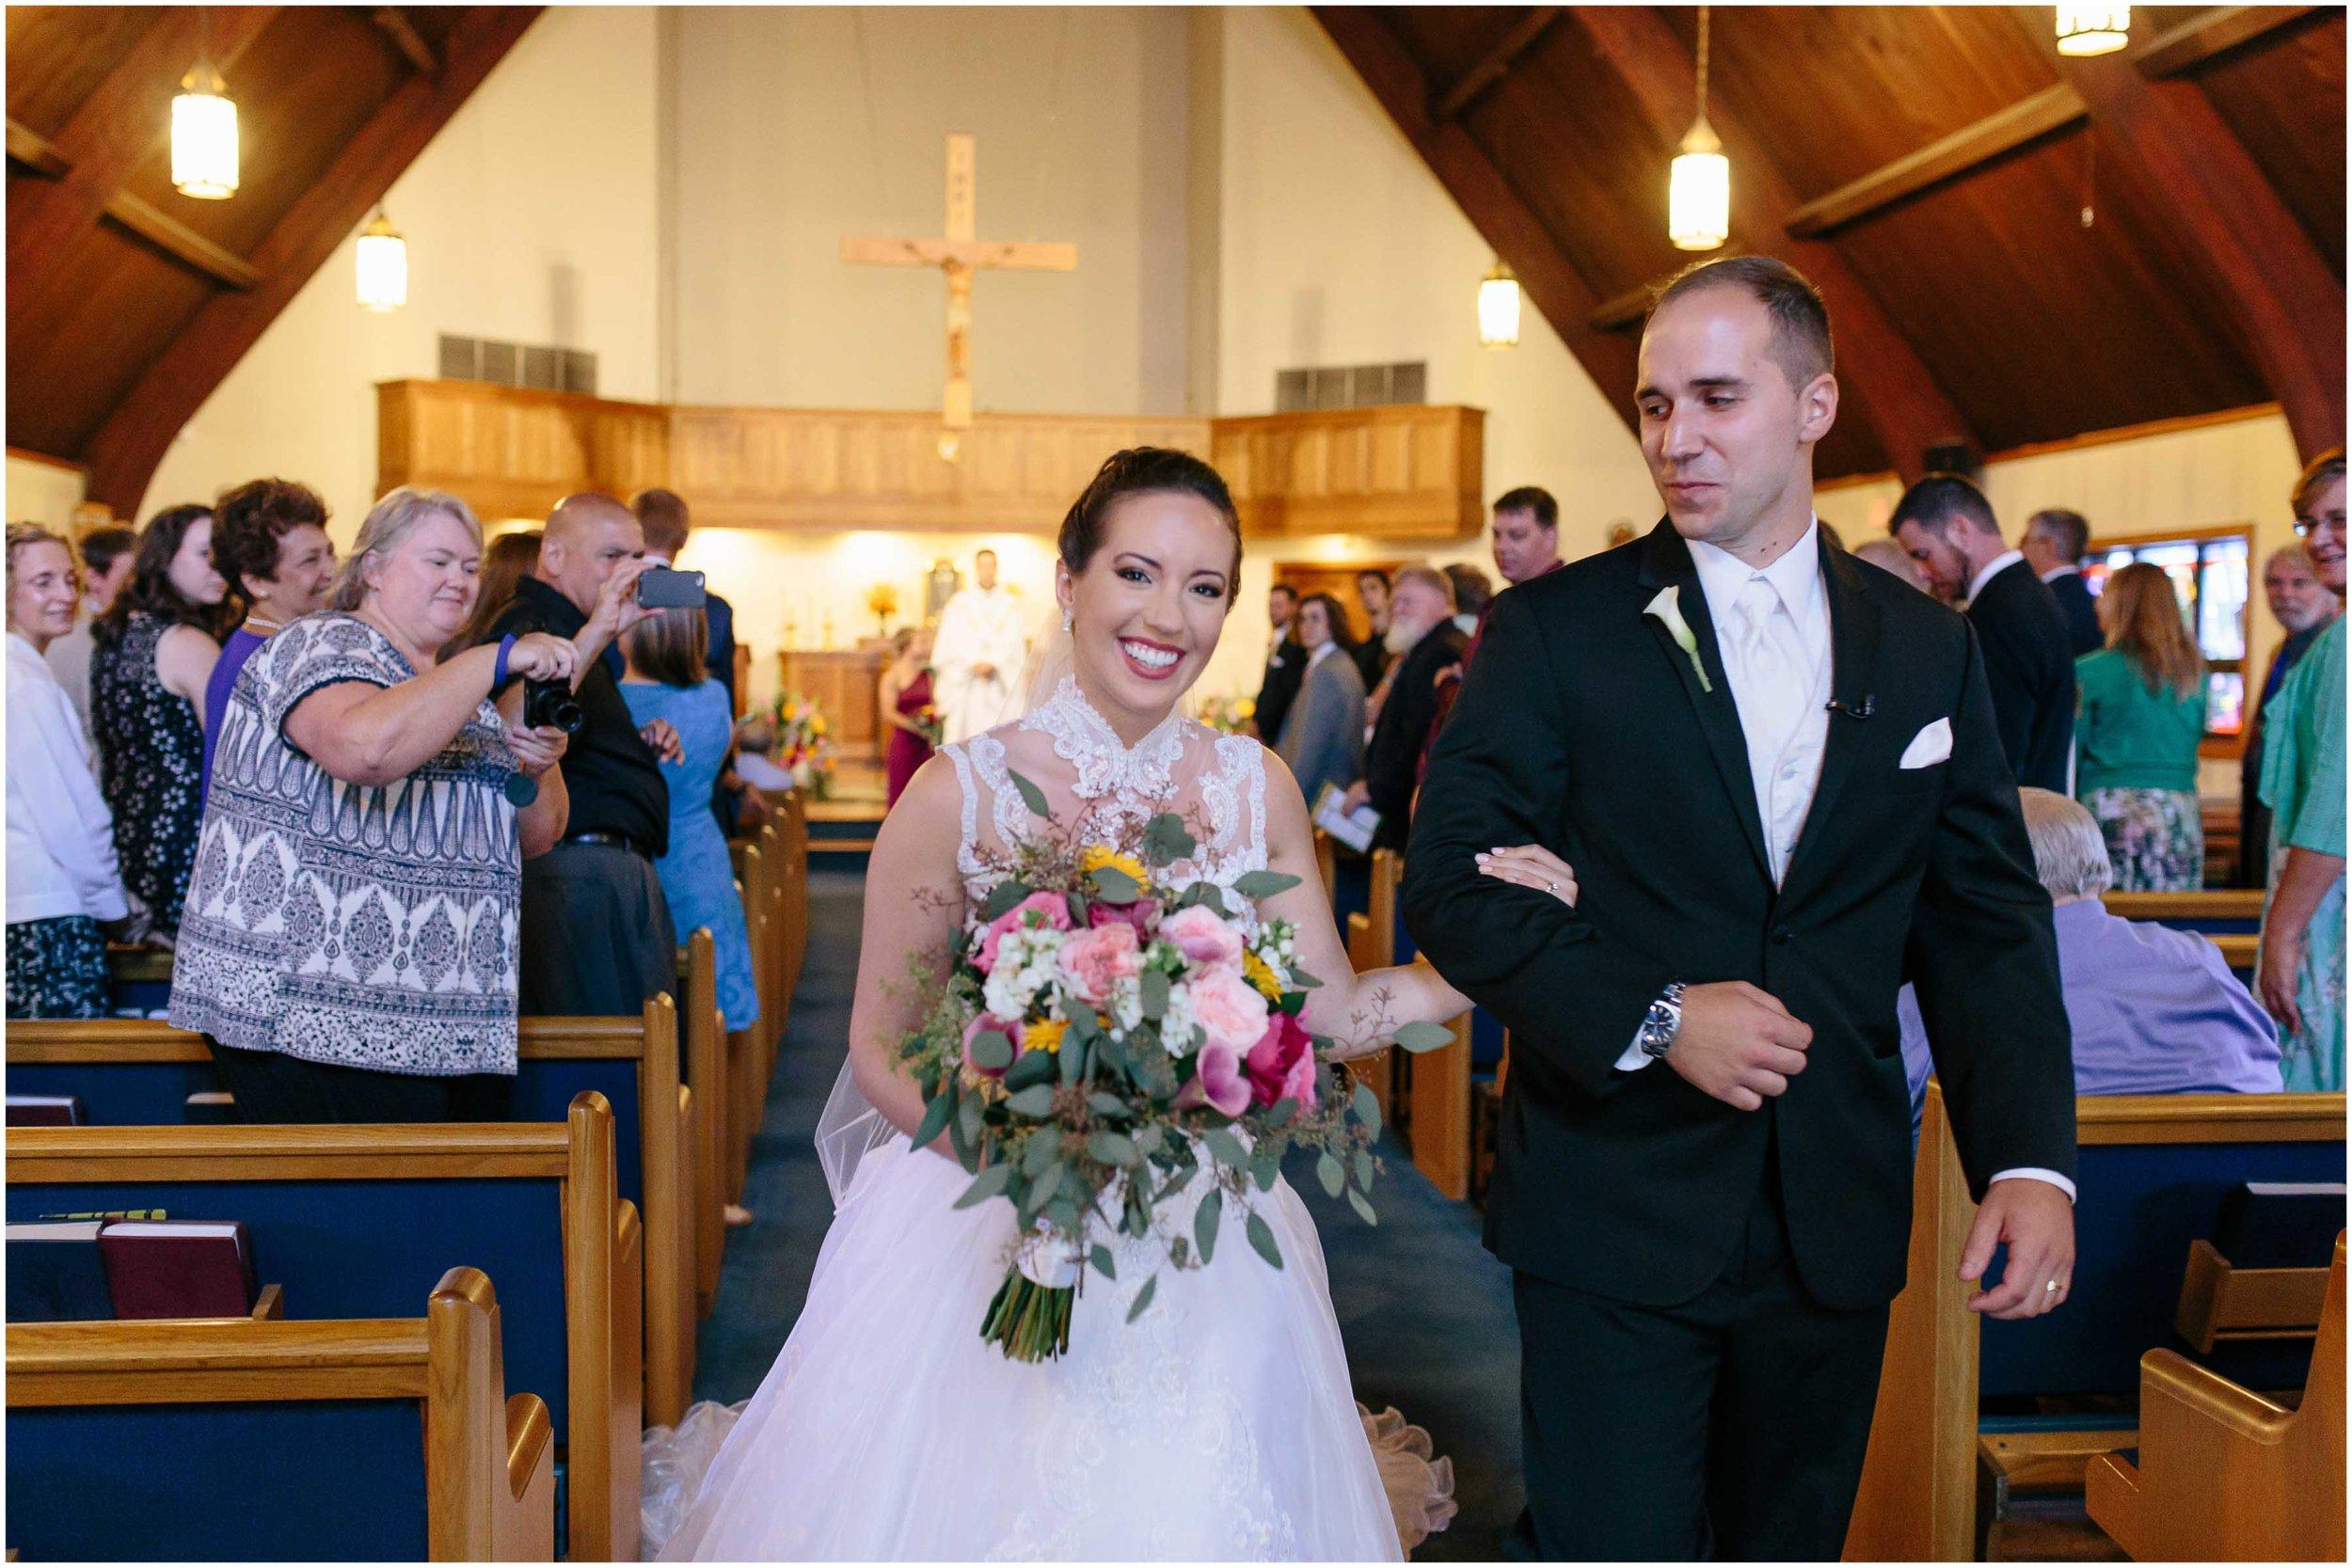 Chic New Hampshire Wedding at Manchester Country Club Bedford - Immaculate Heart of Mary Church bride and groom exit